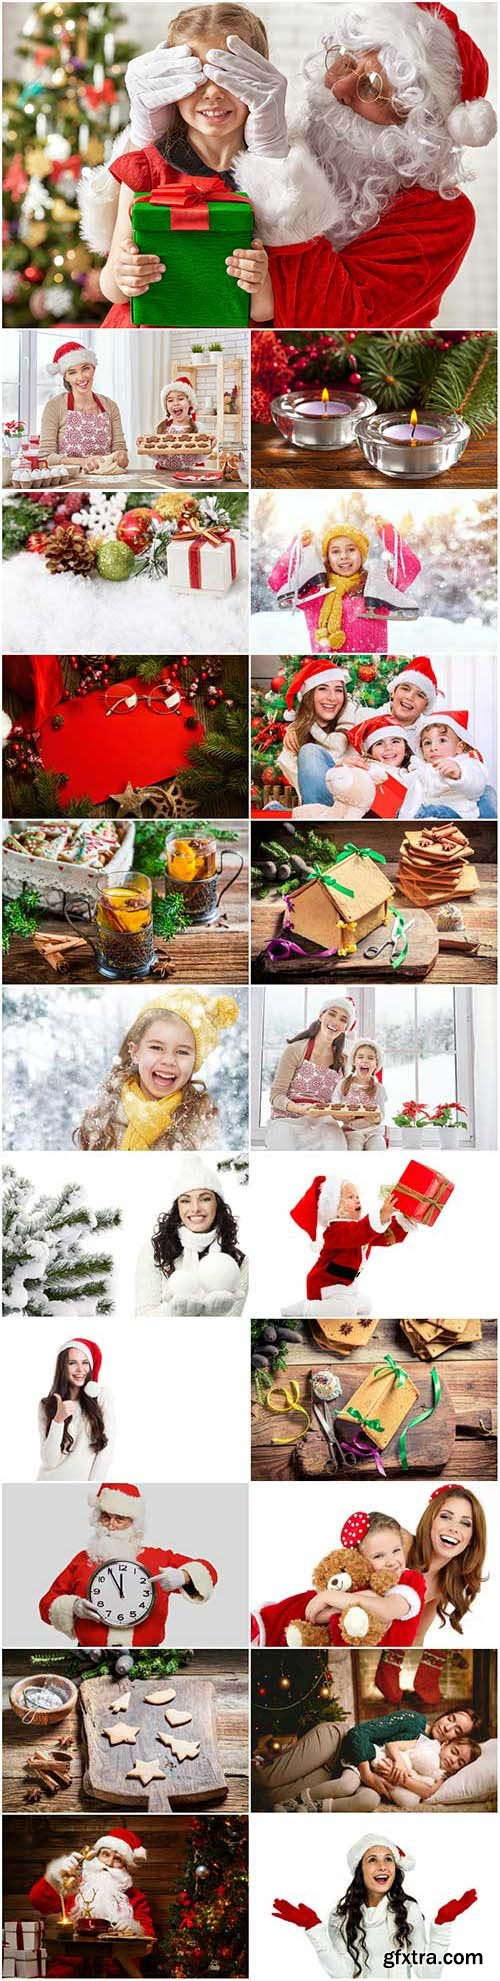 New Year and Christmas stock photos 96